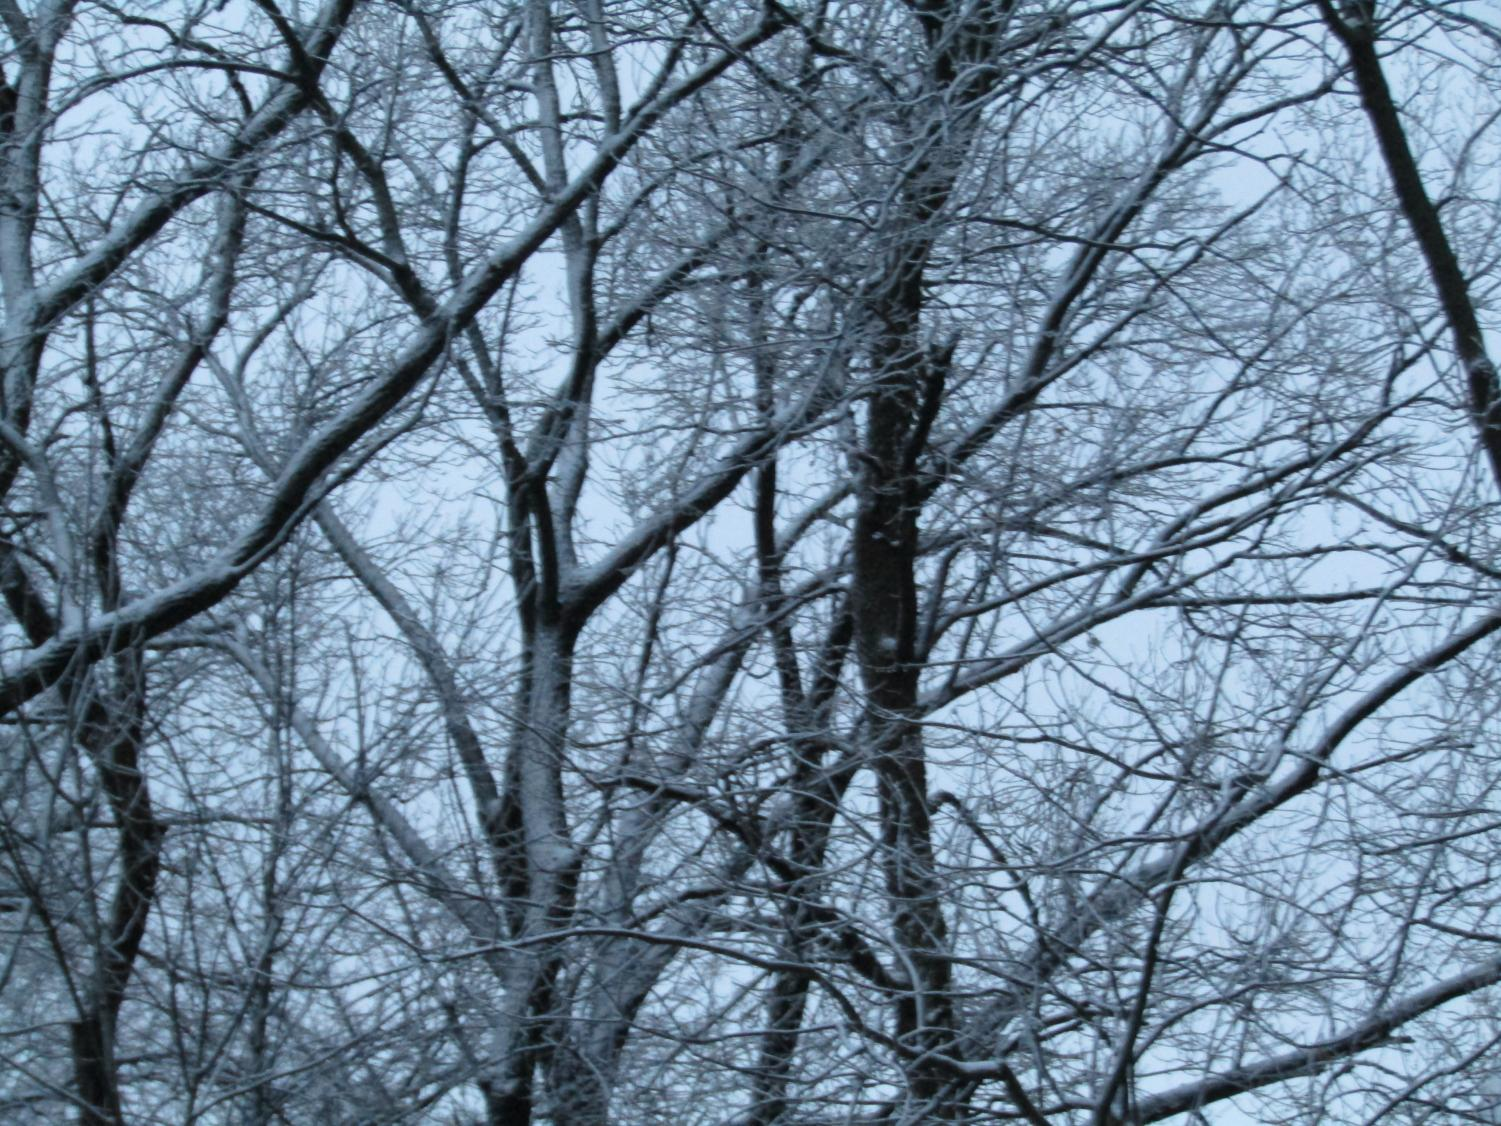 Snow covered trees on a frosty night.